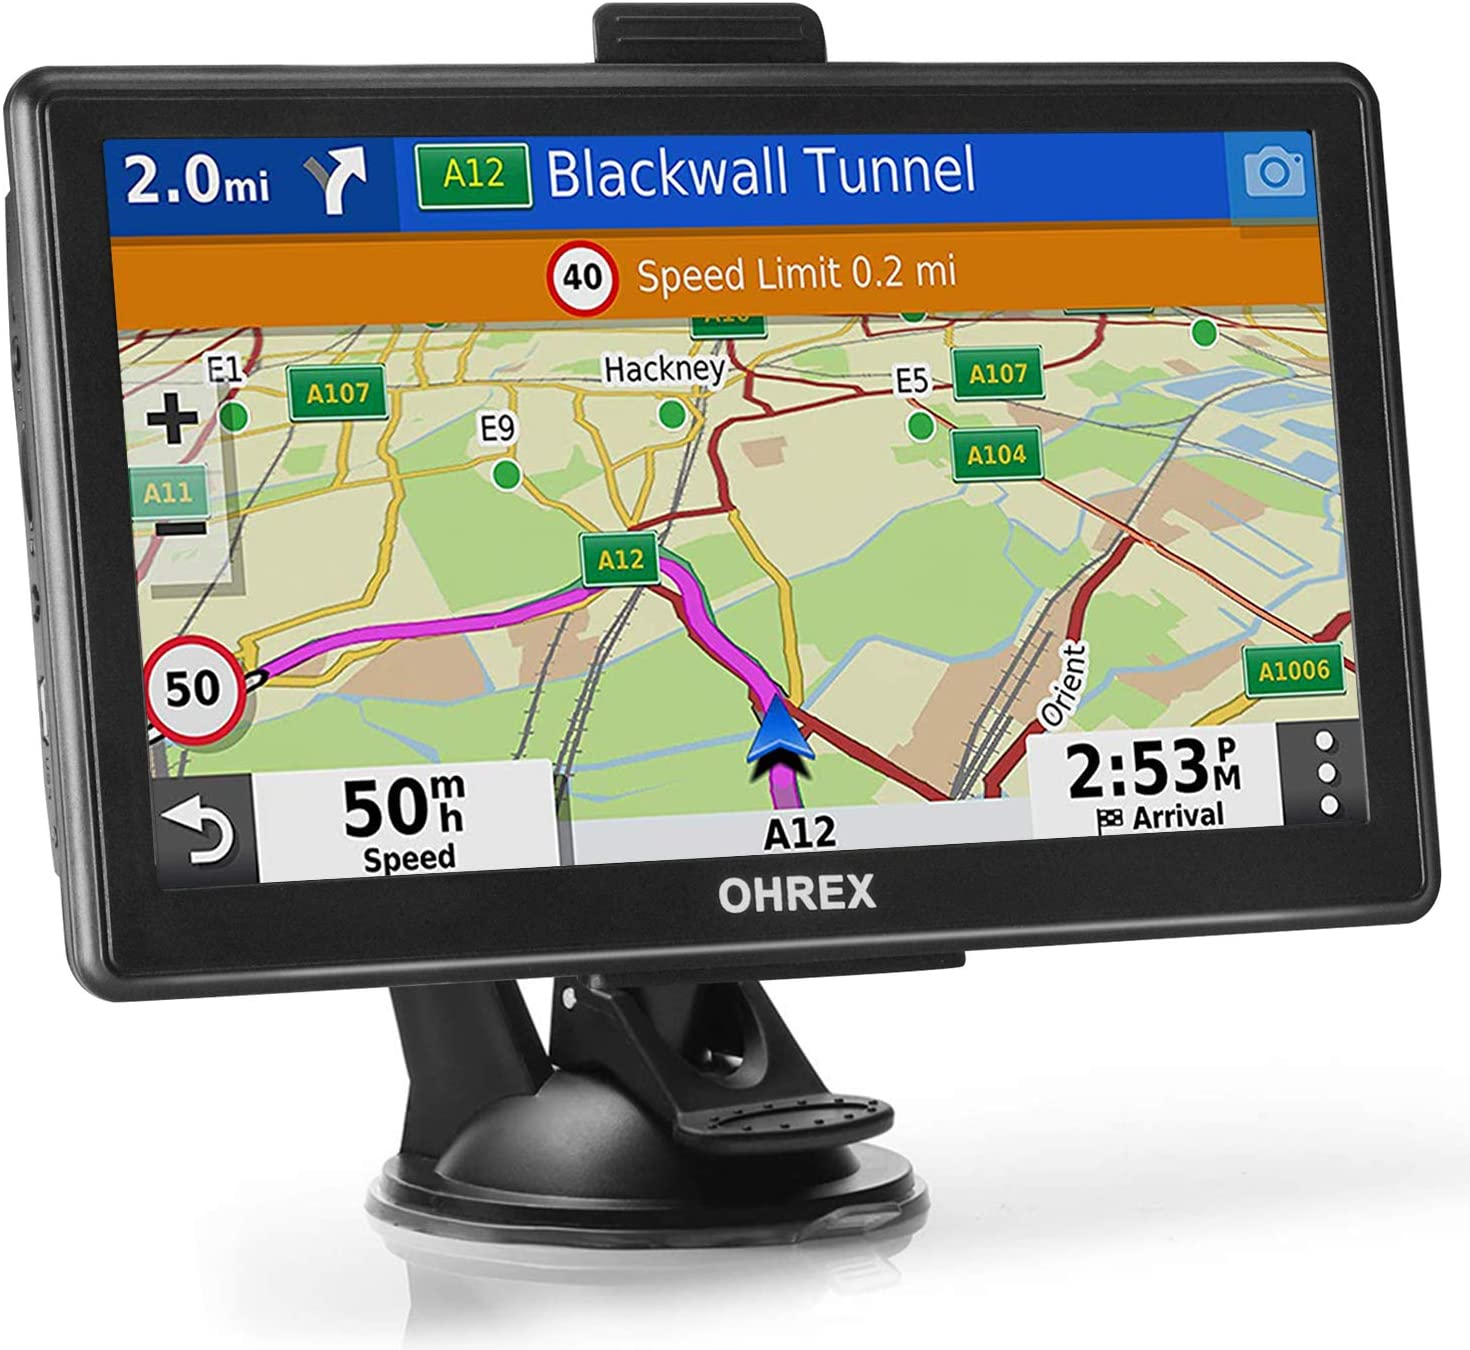 OHREX Bluetooth GPS Navigation for Car Truck RV (7 inch), Trucker GPS Navigation Systems, GPS for Truck Drivers Commercial, Trucking GPS, Motorhomes Truck Route GPS, Free Lifetime Map Updates